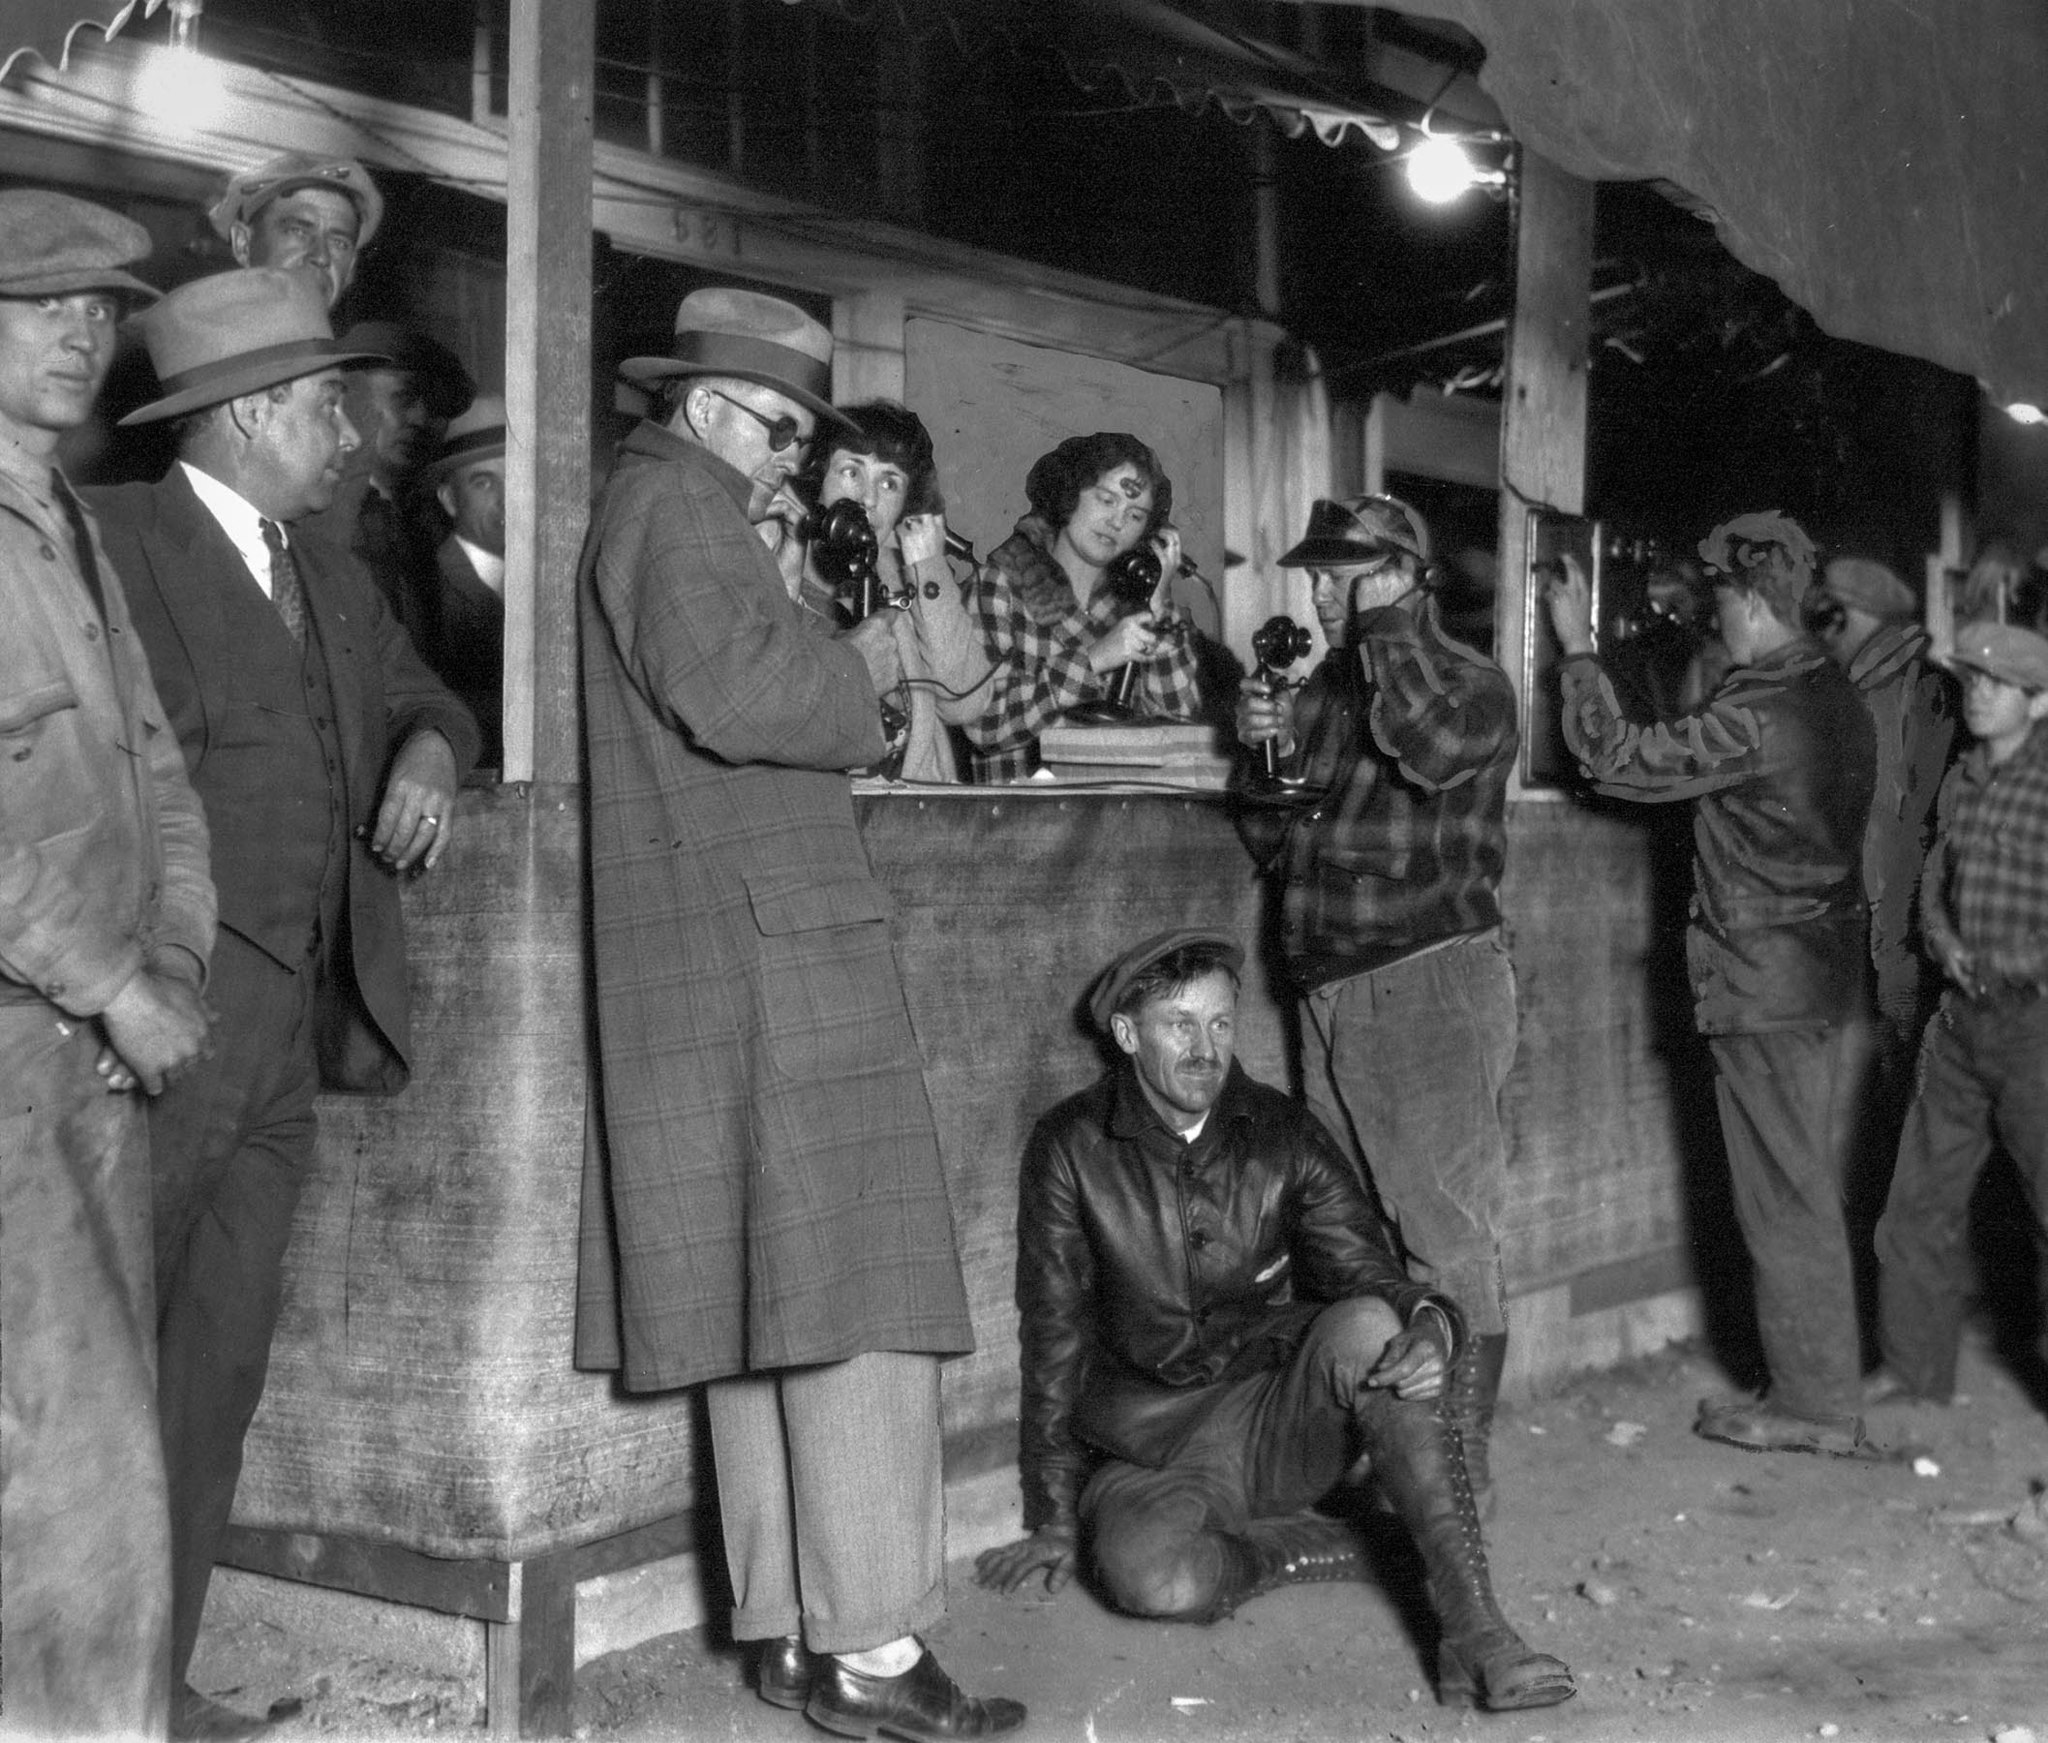 March 1928: Phones in use at emergency telephone station seeking news of flood after collapse of St